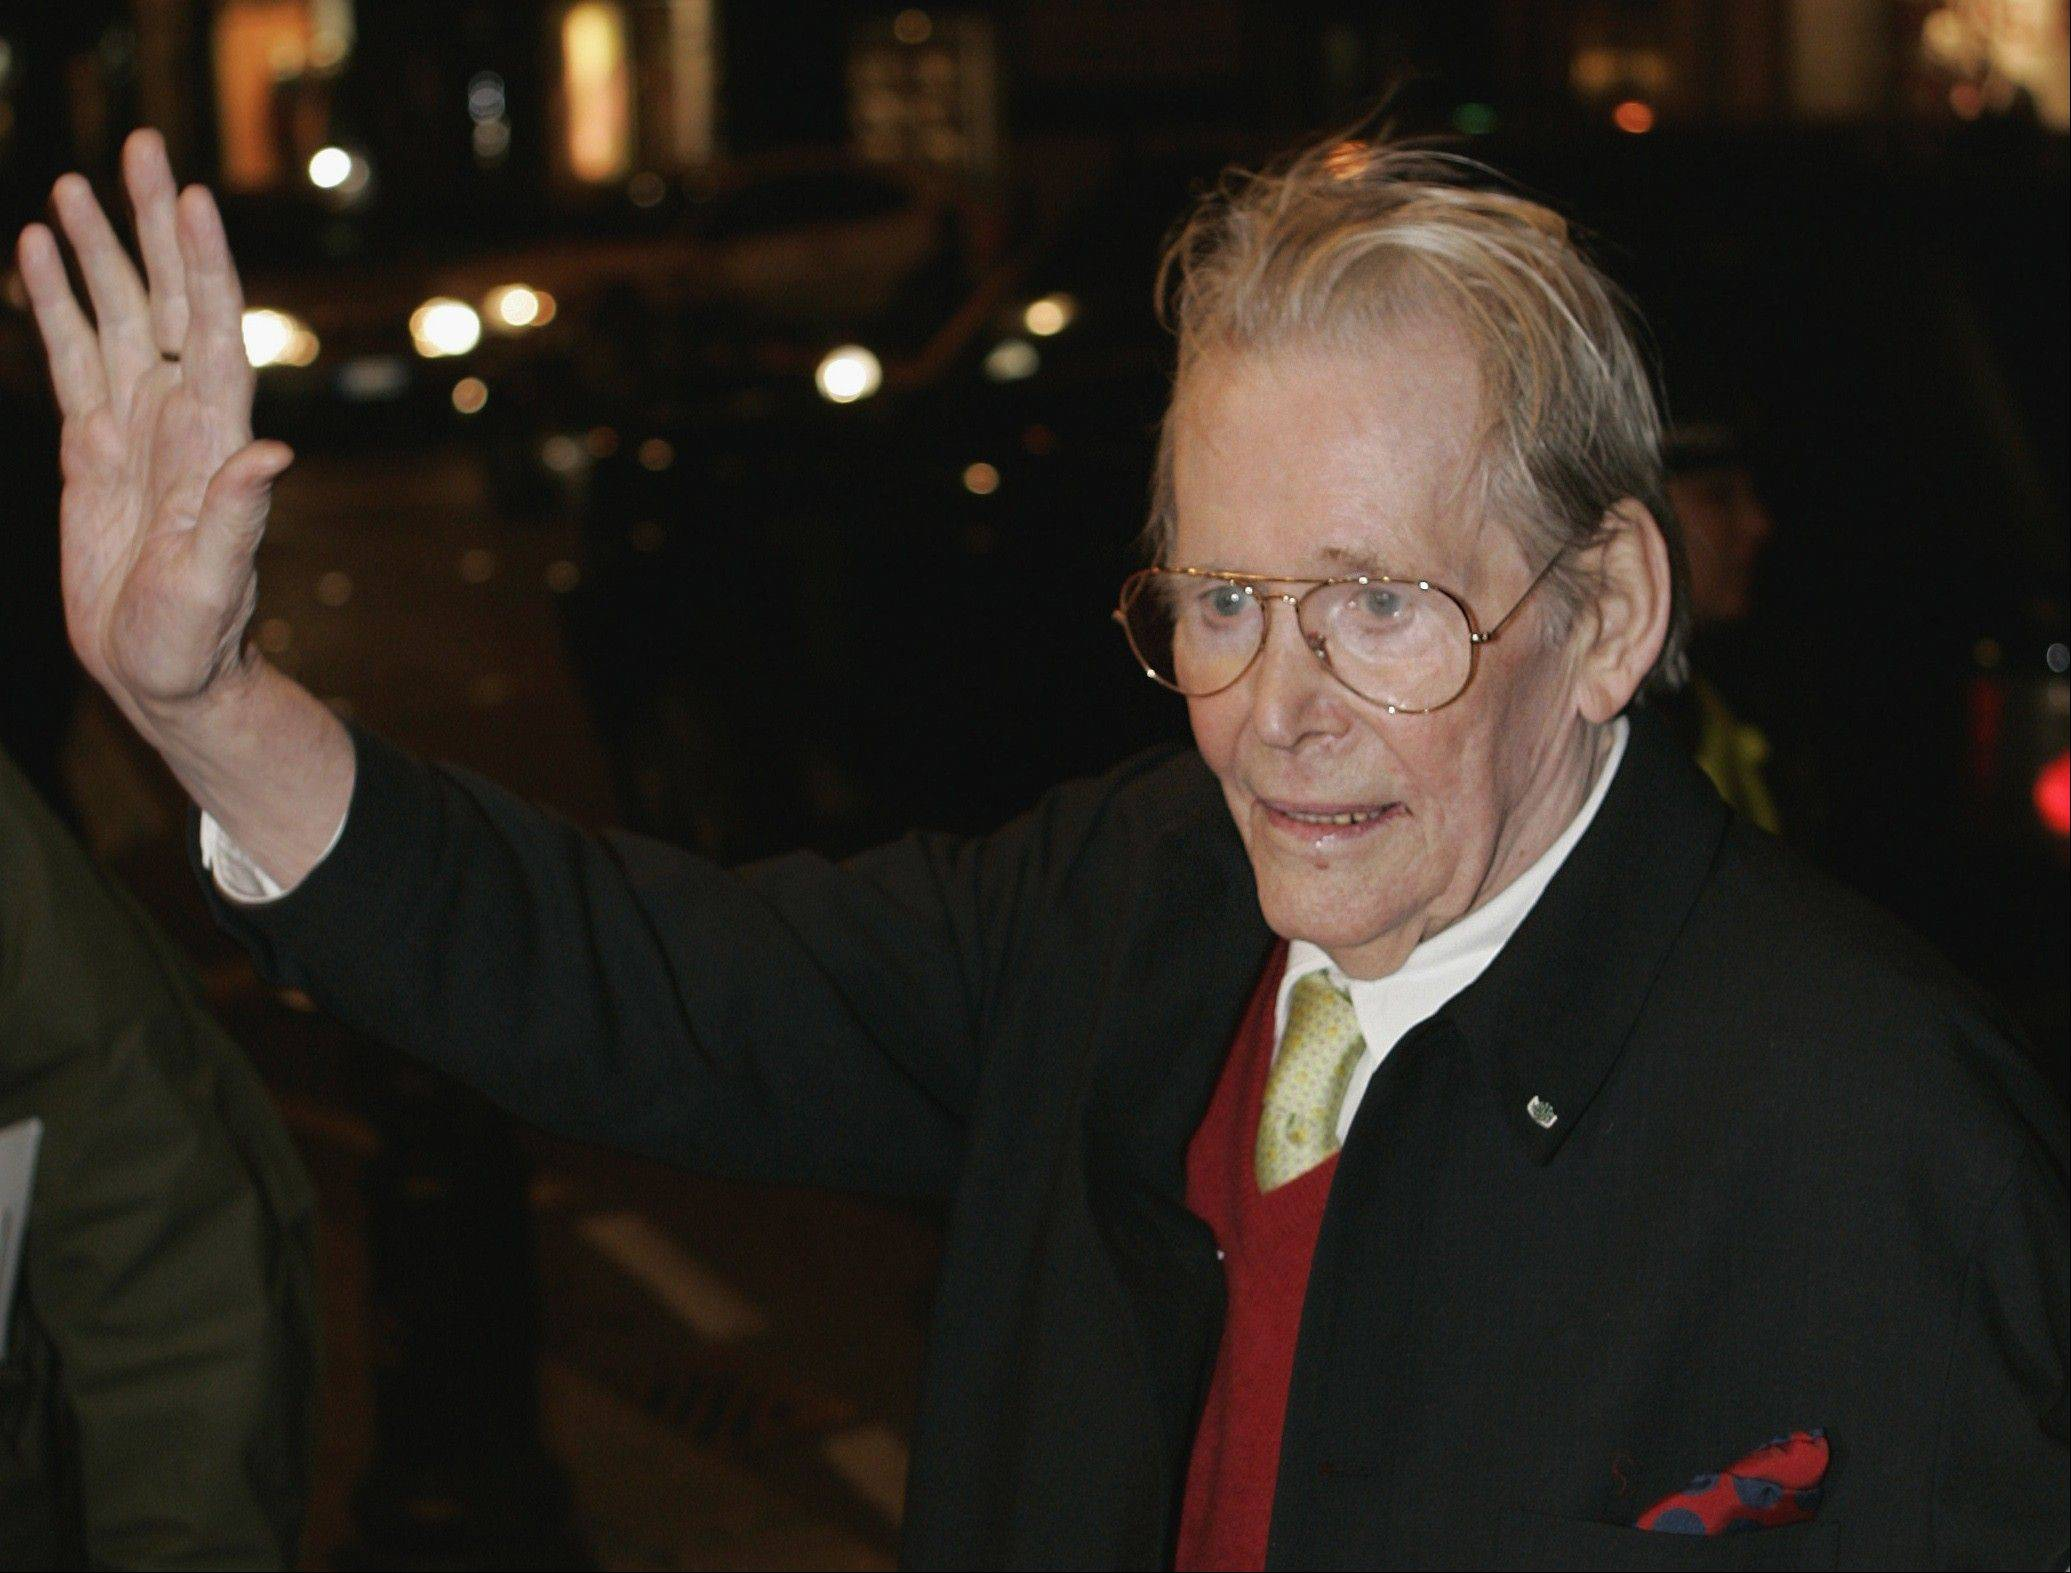 British actor Peter O'Toole arrives for the British premiere of his 2007 film 'Venus' at a central London cinema. O'Toole, the charismatic actor who achieved instant stardom as Lawrence of Arabia and was nominated eight times for an Academy Award, died at the age of 81.